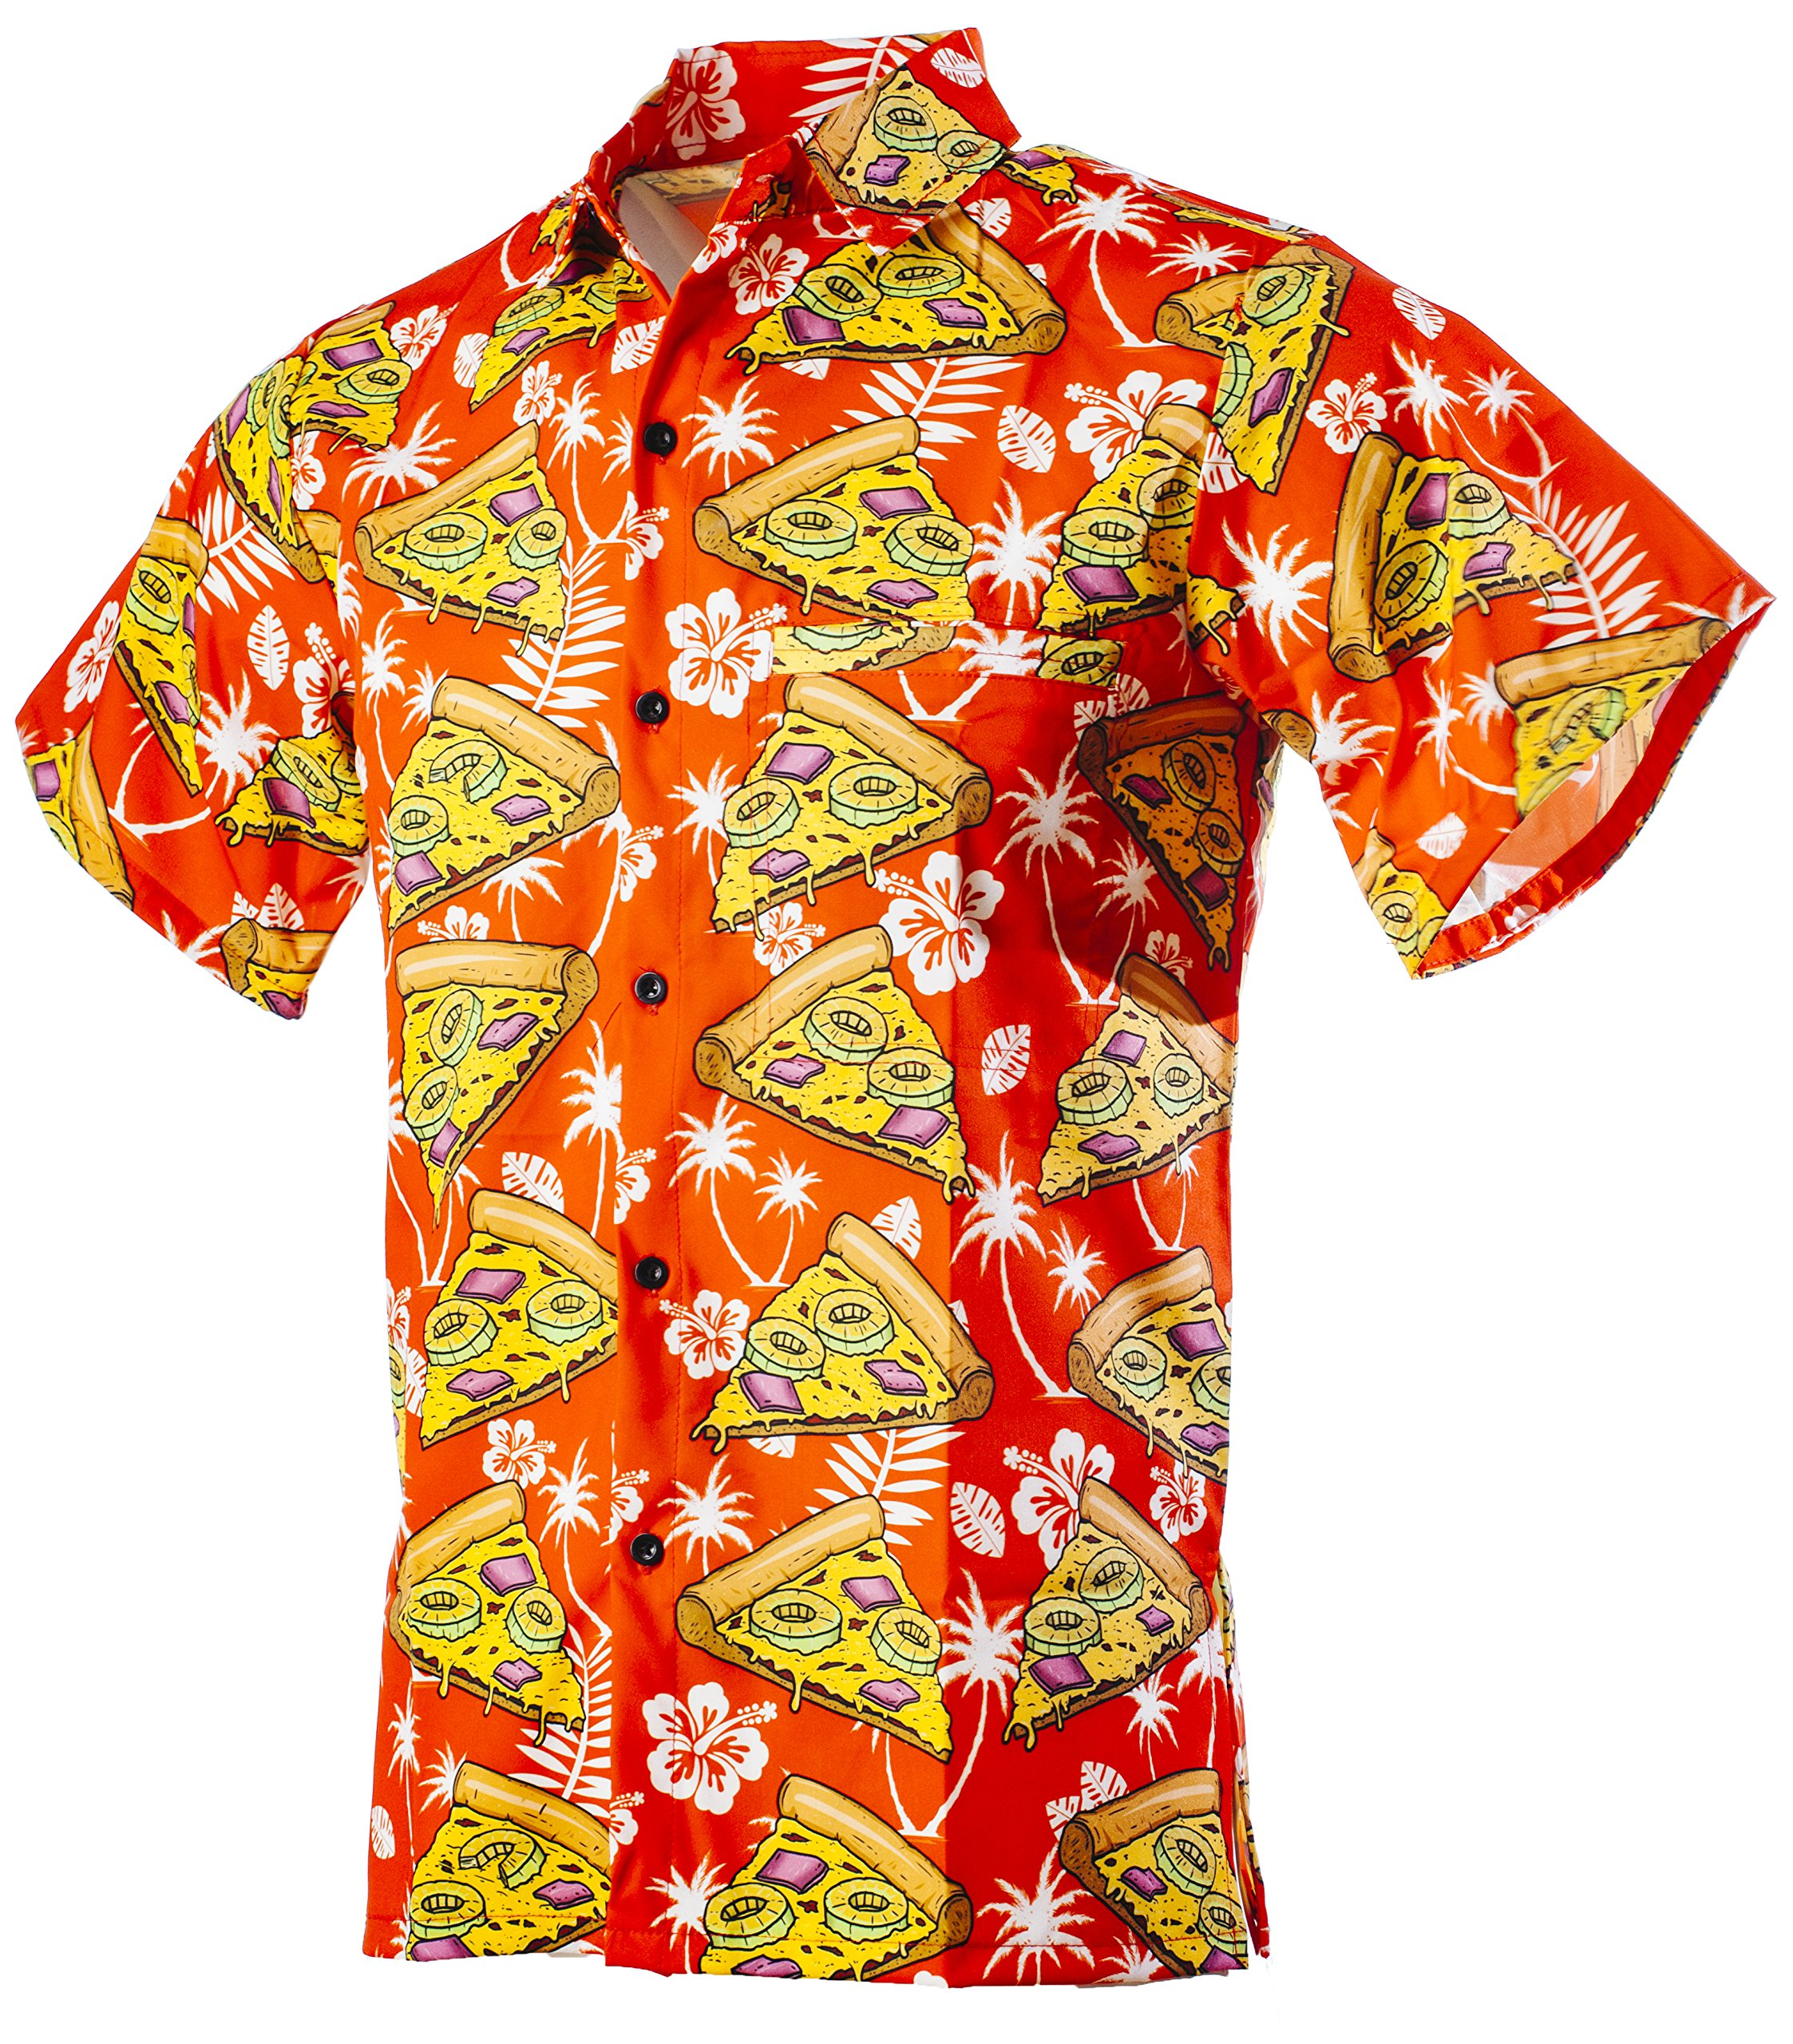 1247e57c7 Galleon - Funny Guy Mugs Mens Hawaiian Pizza Print Button Down Short Sleeve  Shirt, 2X-Large